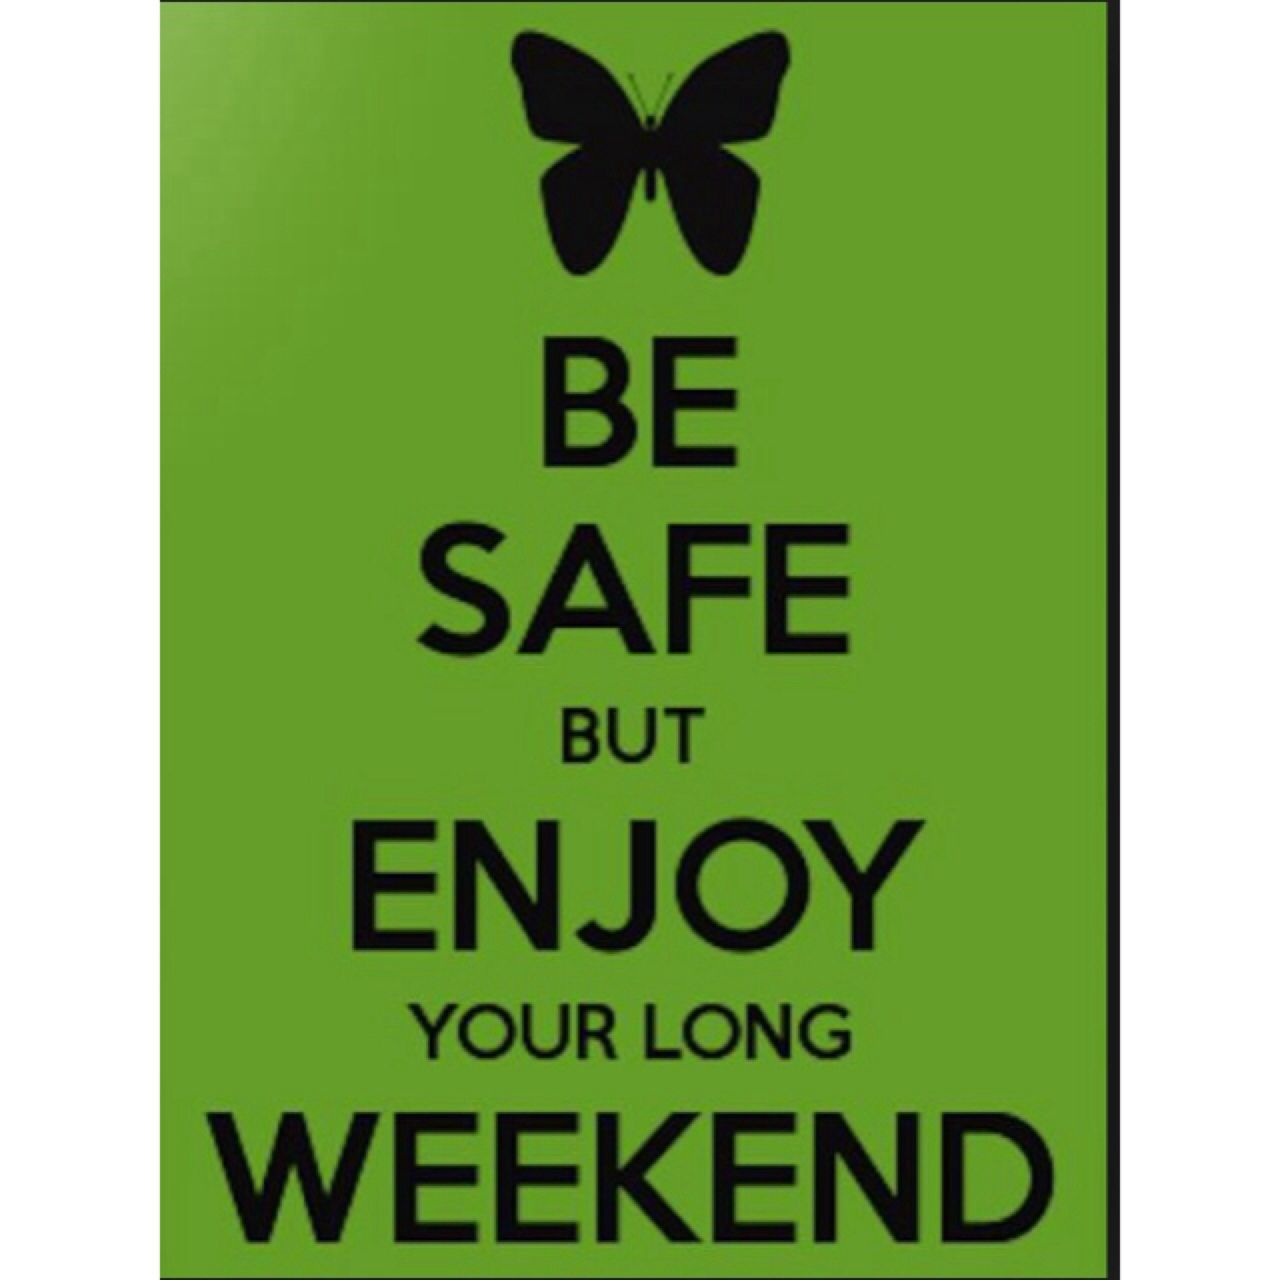 Be safe, but enjoy your long weekend. 🏄🎣🏊 Long weekend